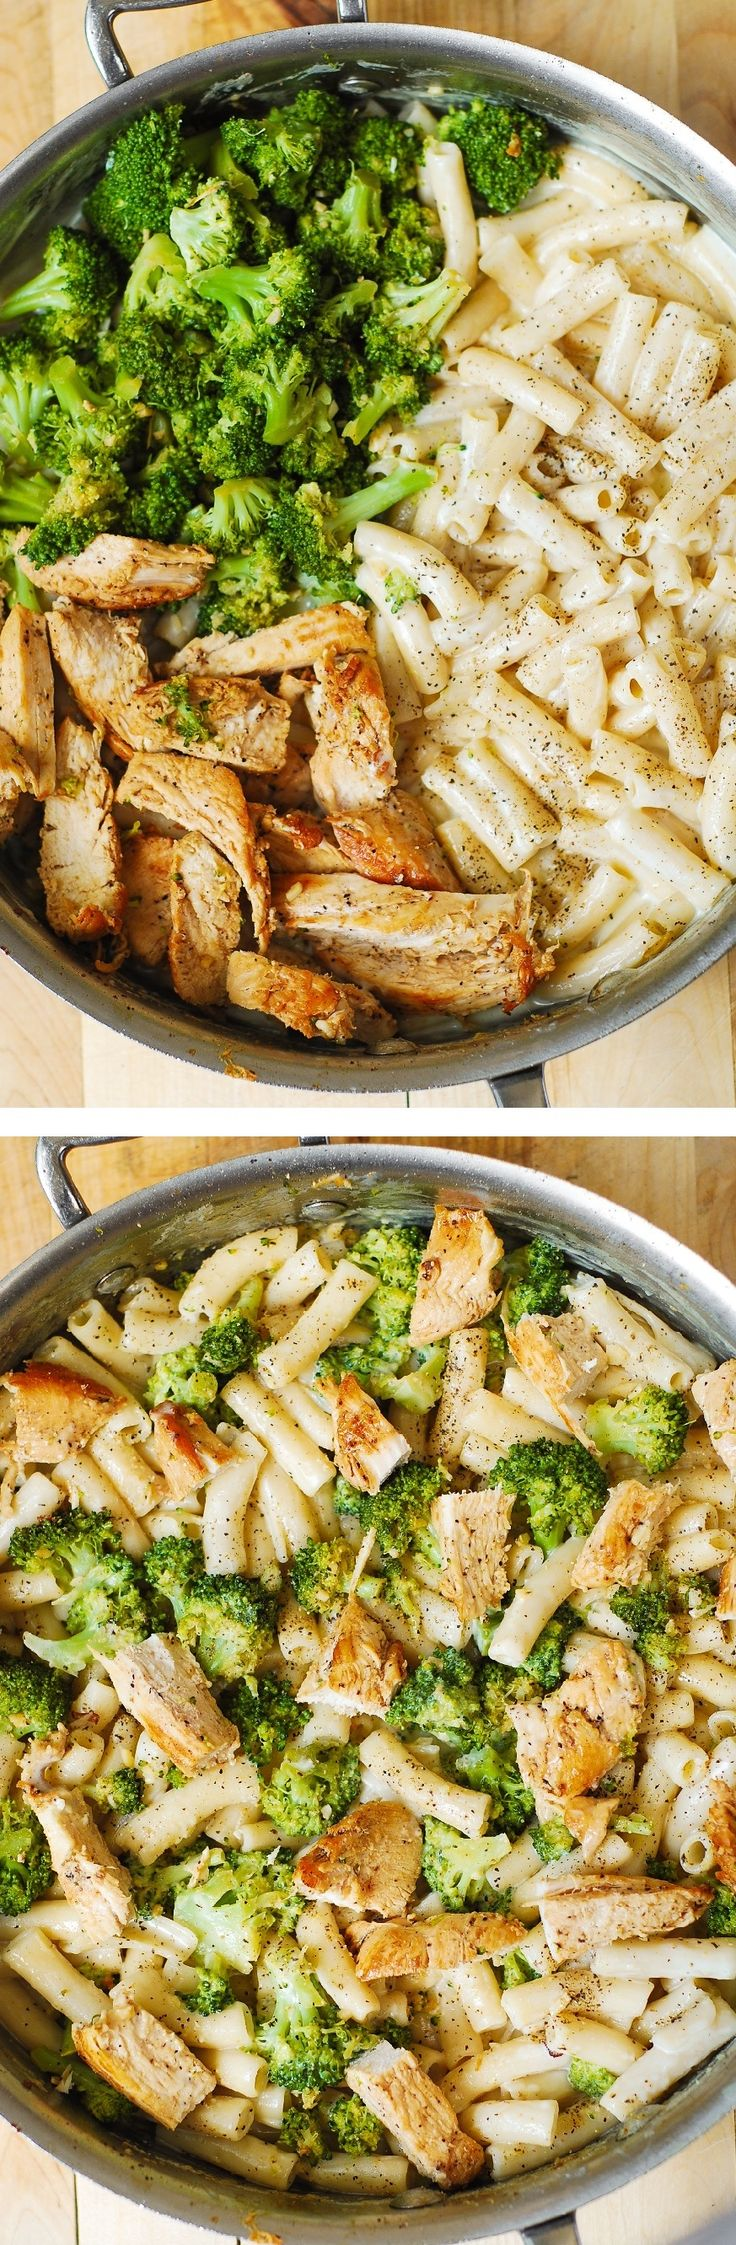 chicken breast, broccoli, garlic in a simple, homemade cream sauce